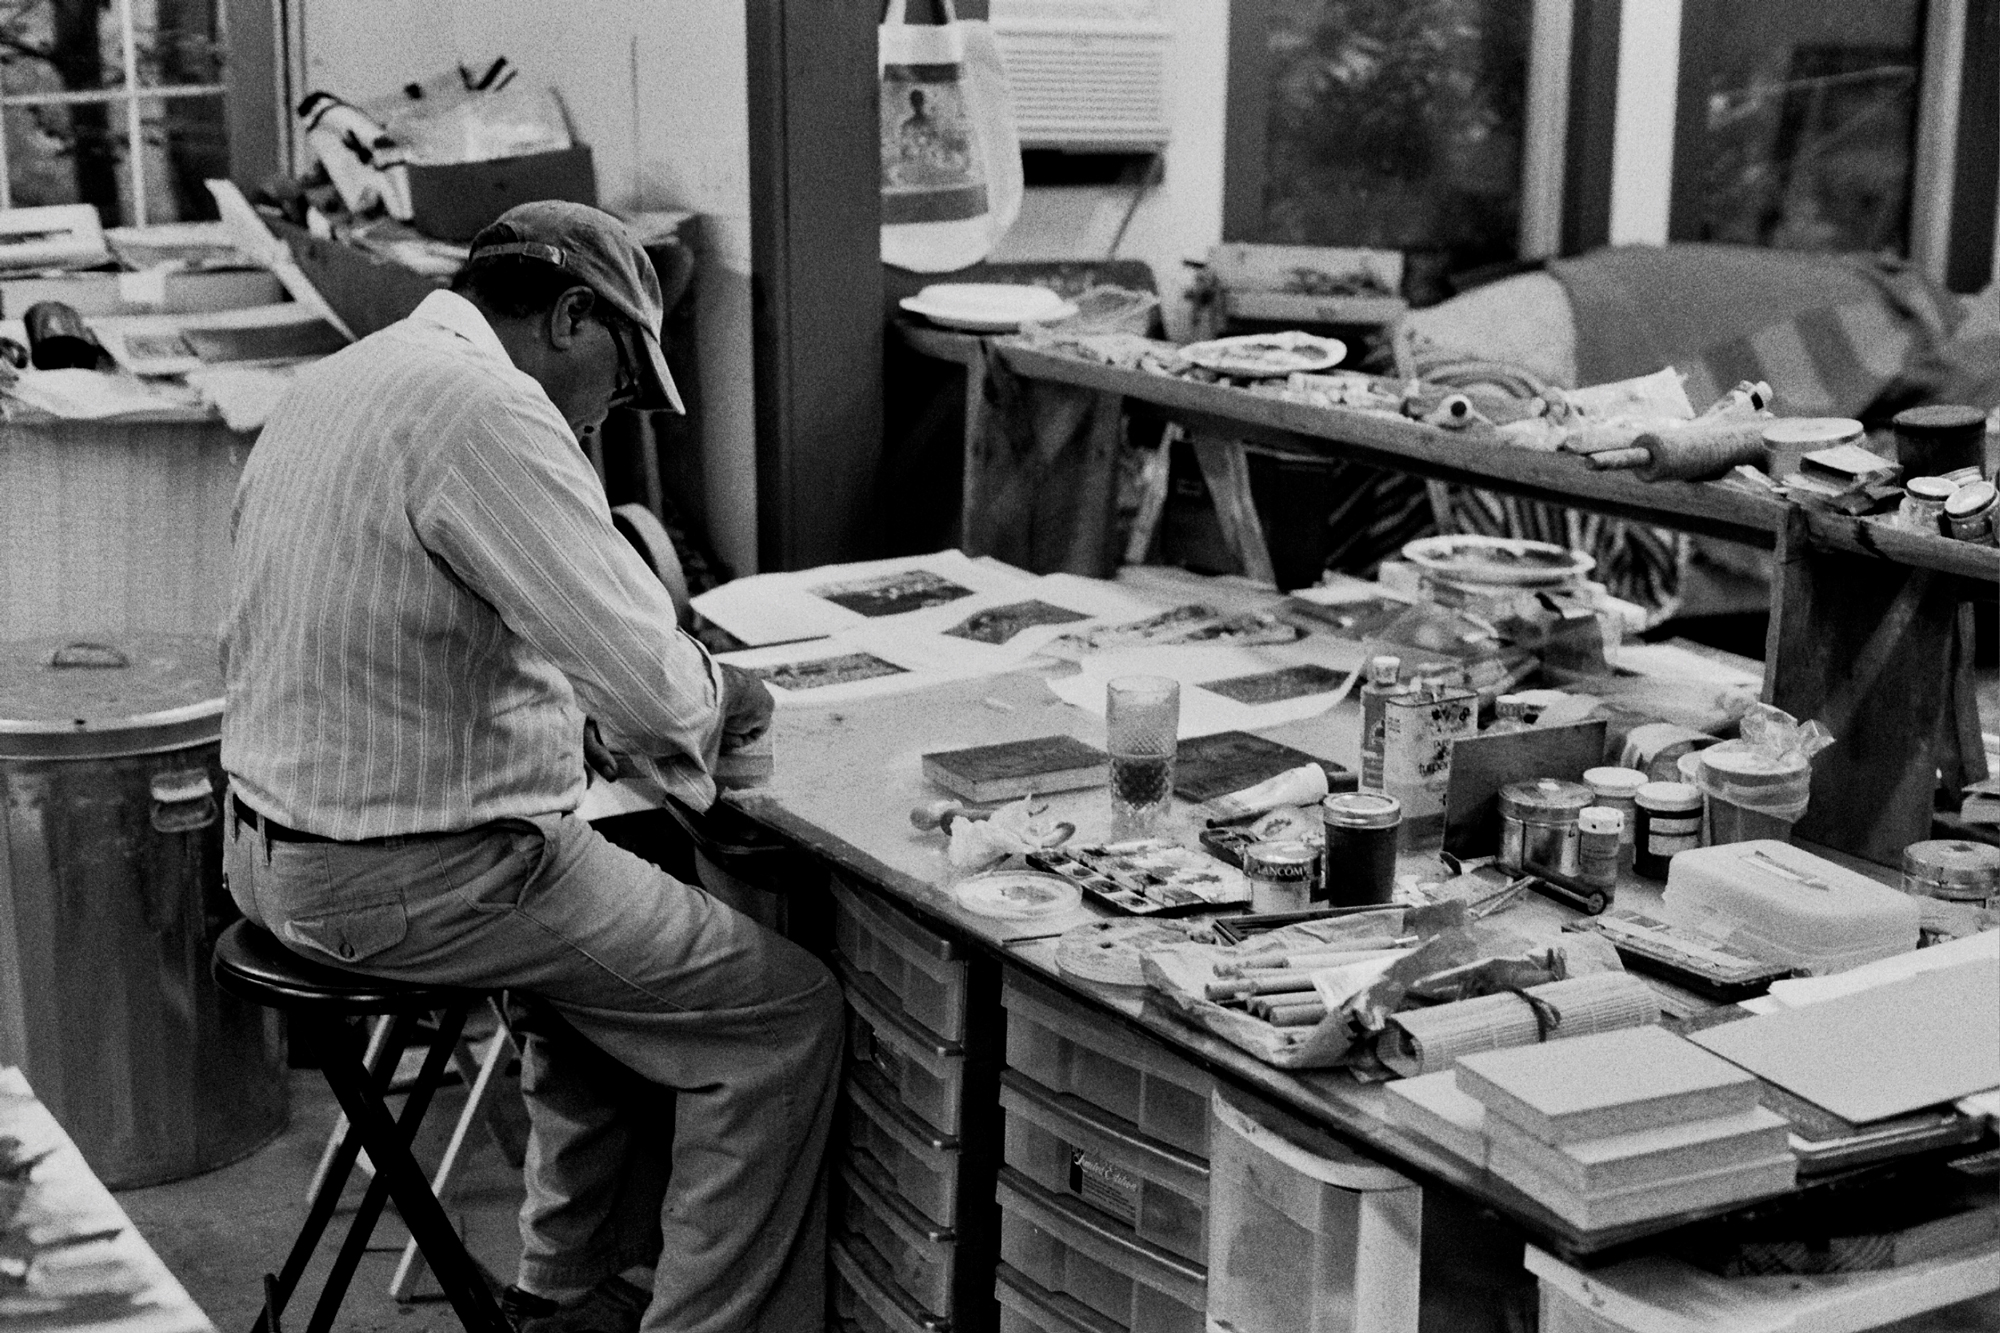 David C. Driskell in his studio, photographed by Lyle Ashton Harris in 2015.